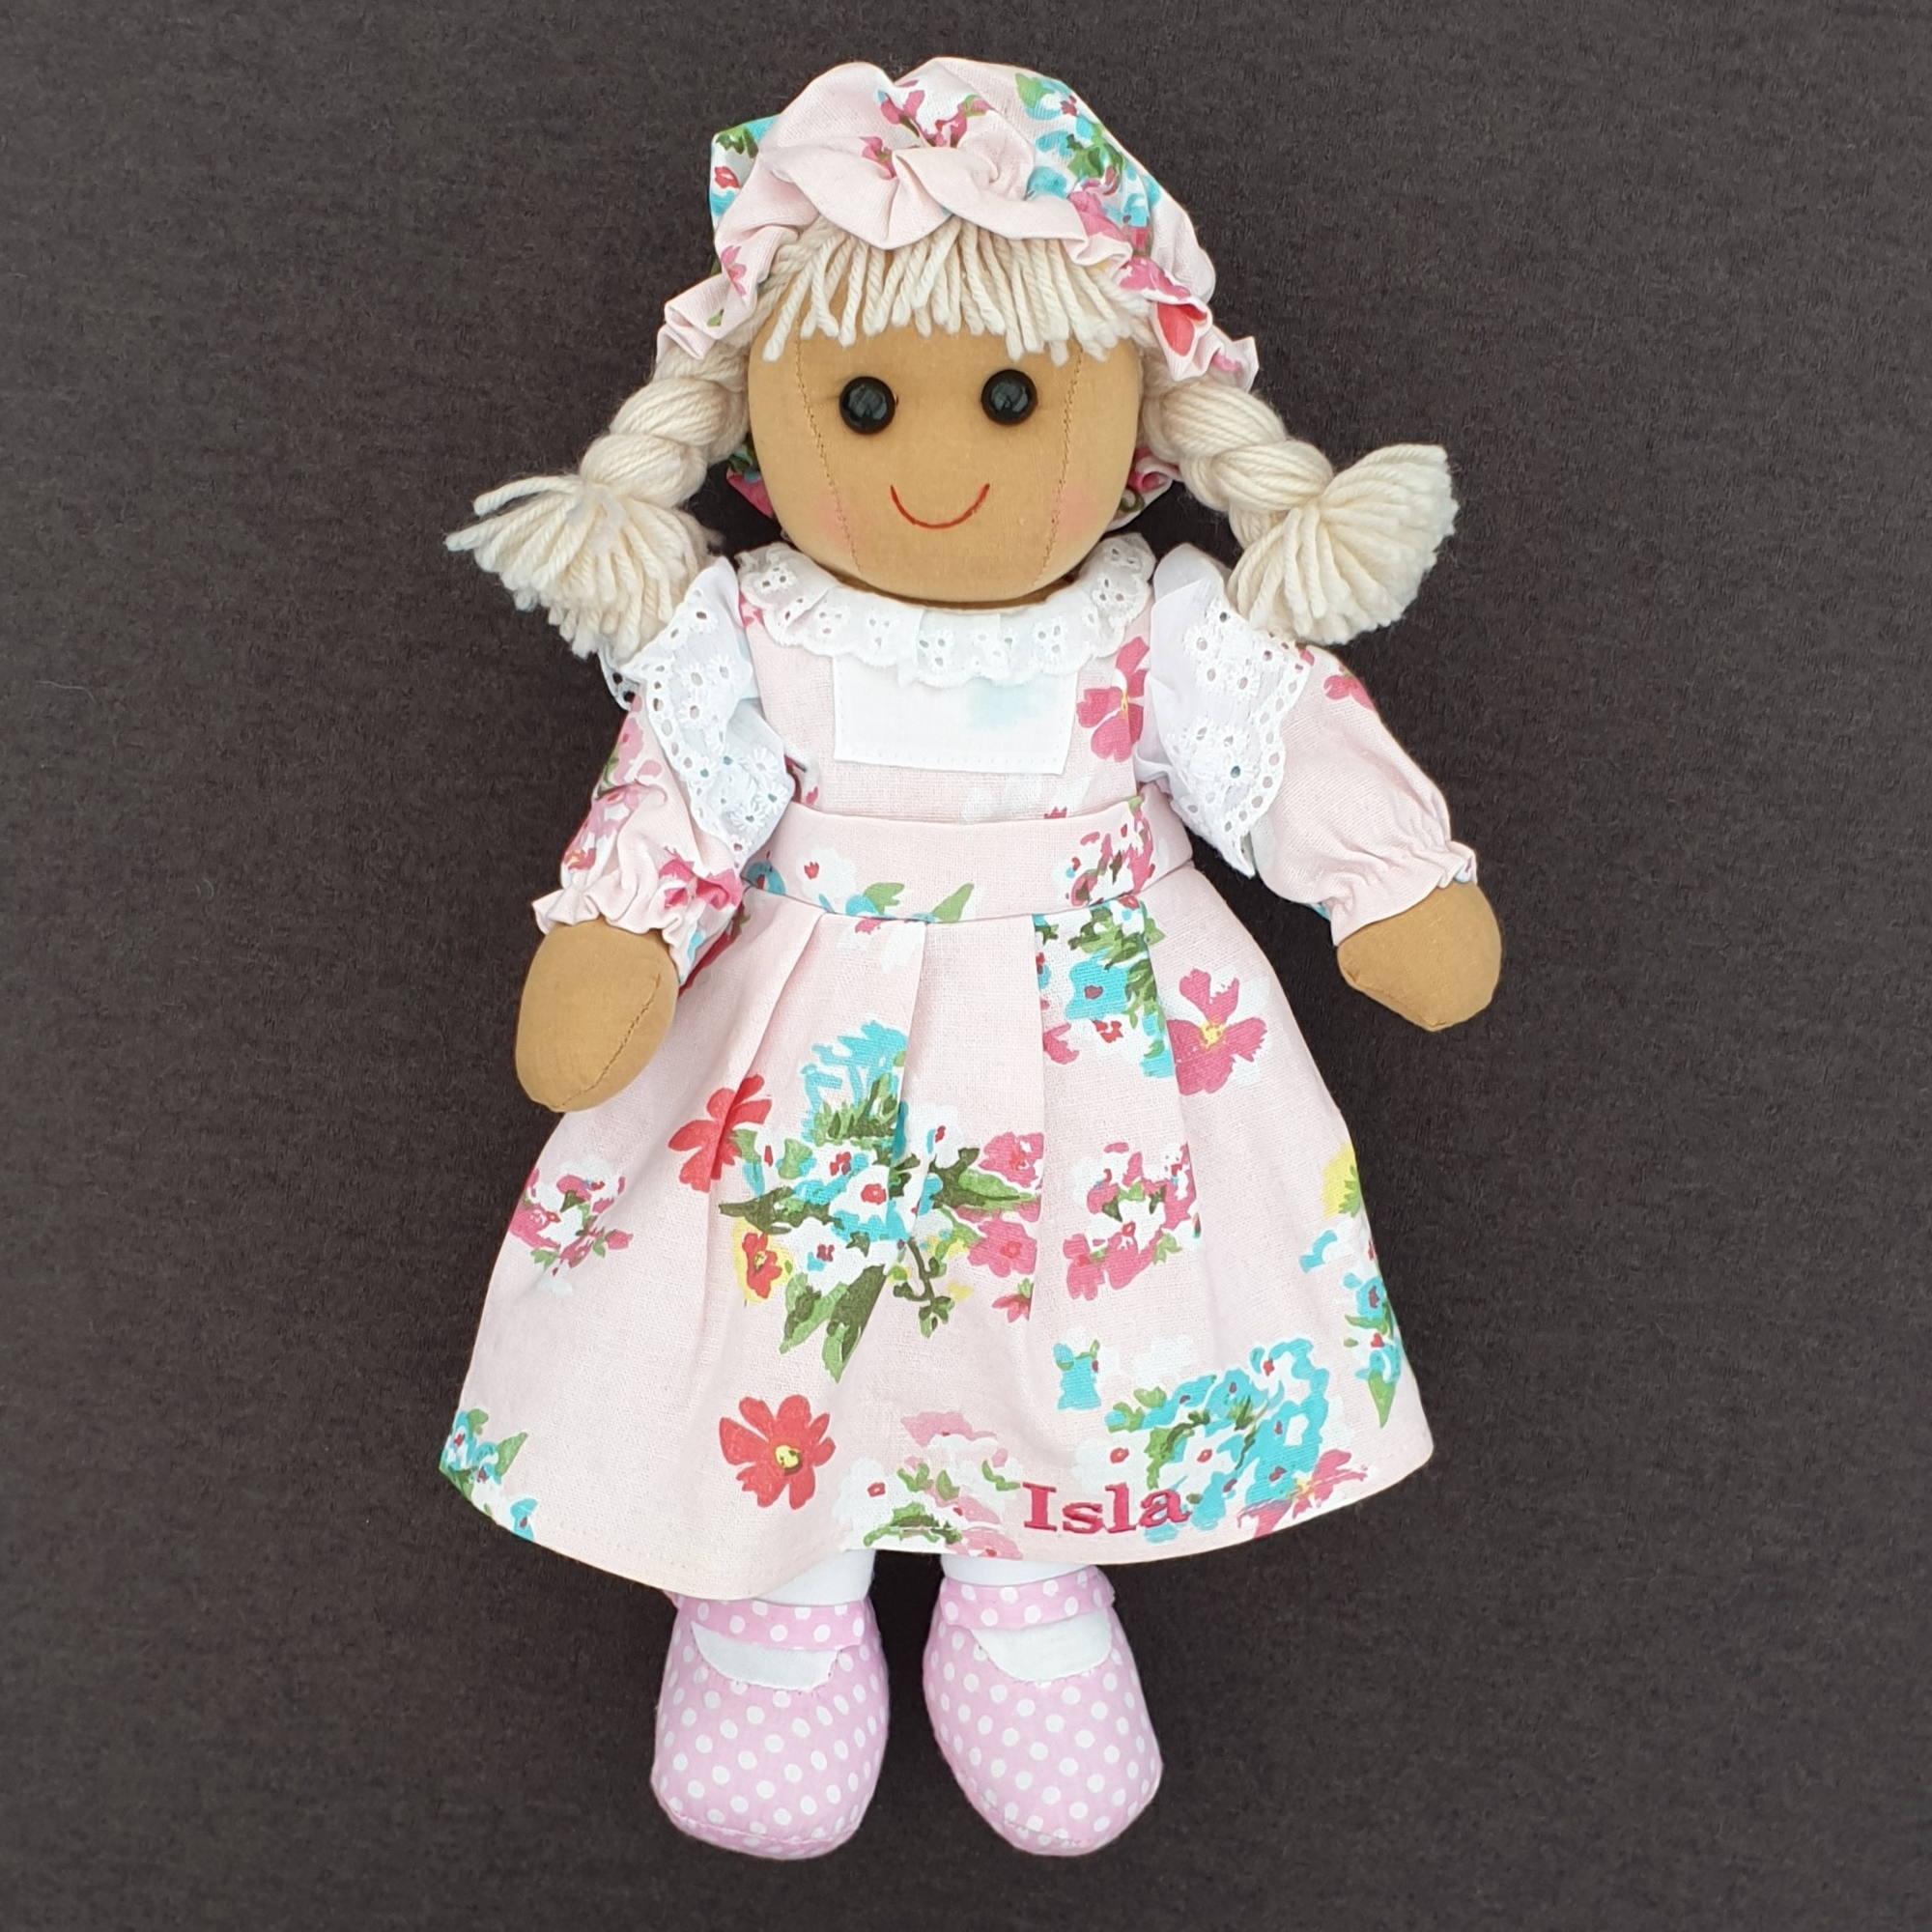 Personalised rag doll wearing a pink floral dress that can be personalised with a name of up to 10 characters plus a matching hat.  Underneath her dress she is wearing white pantaloons.